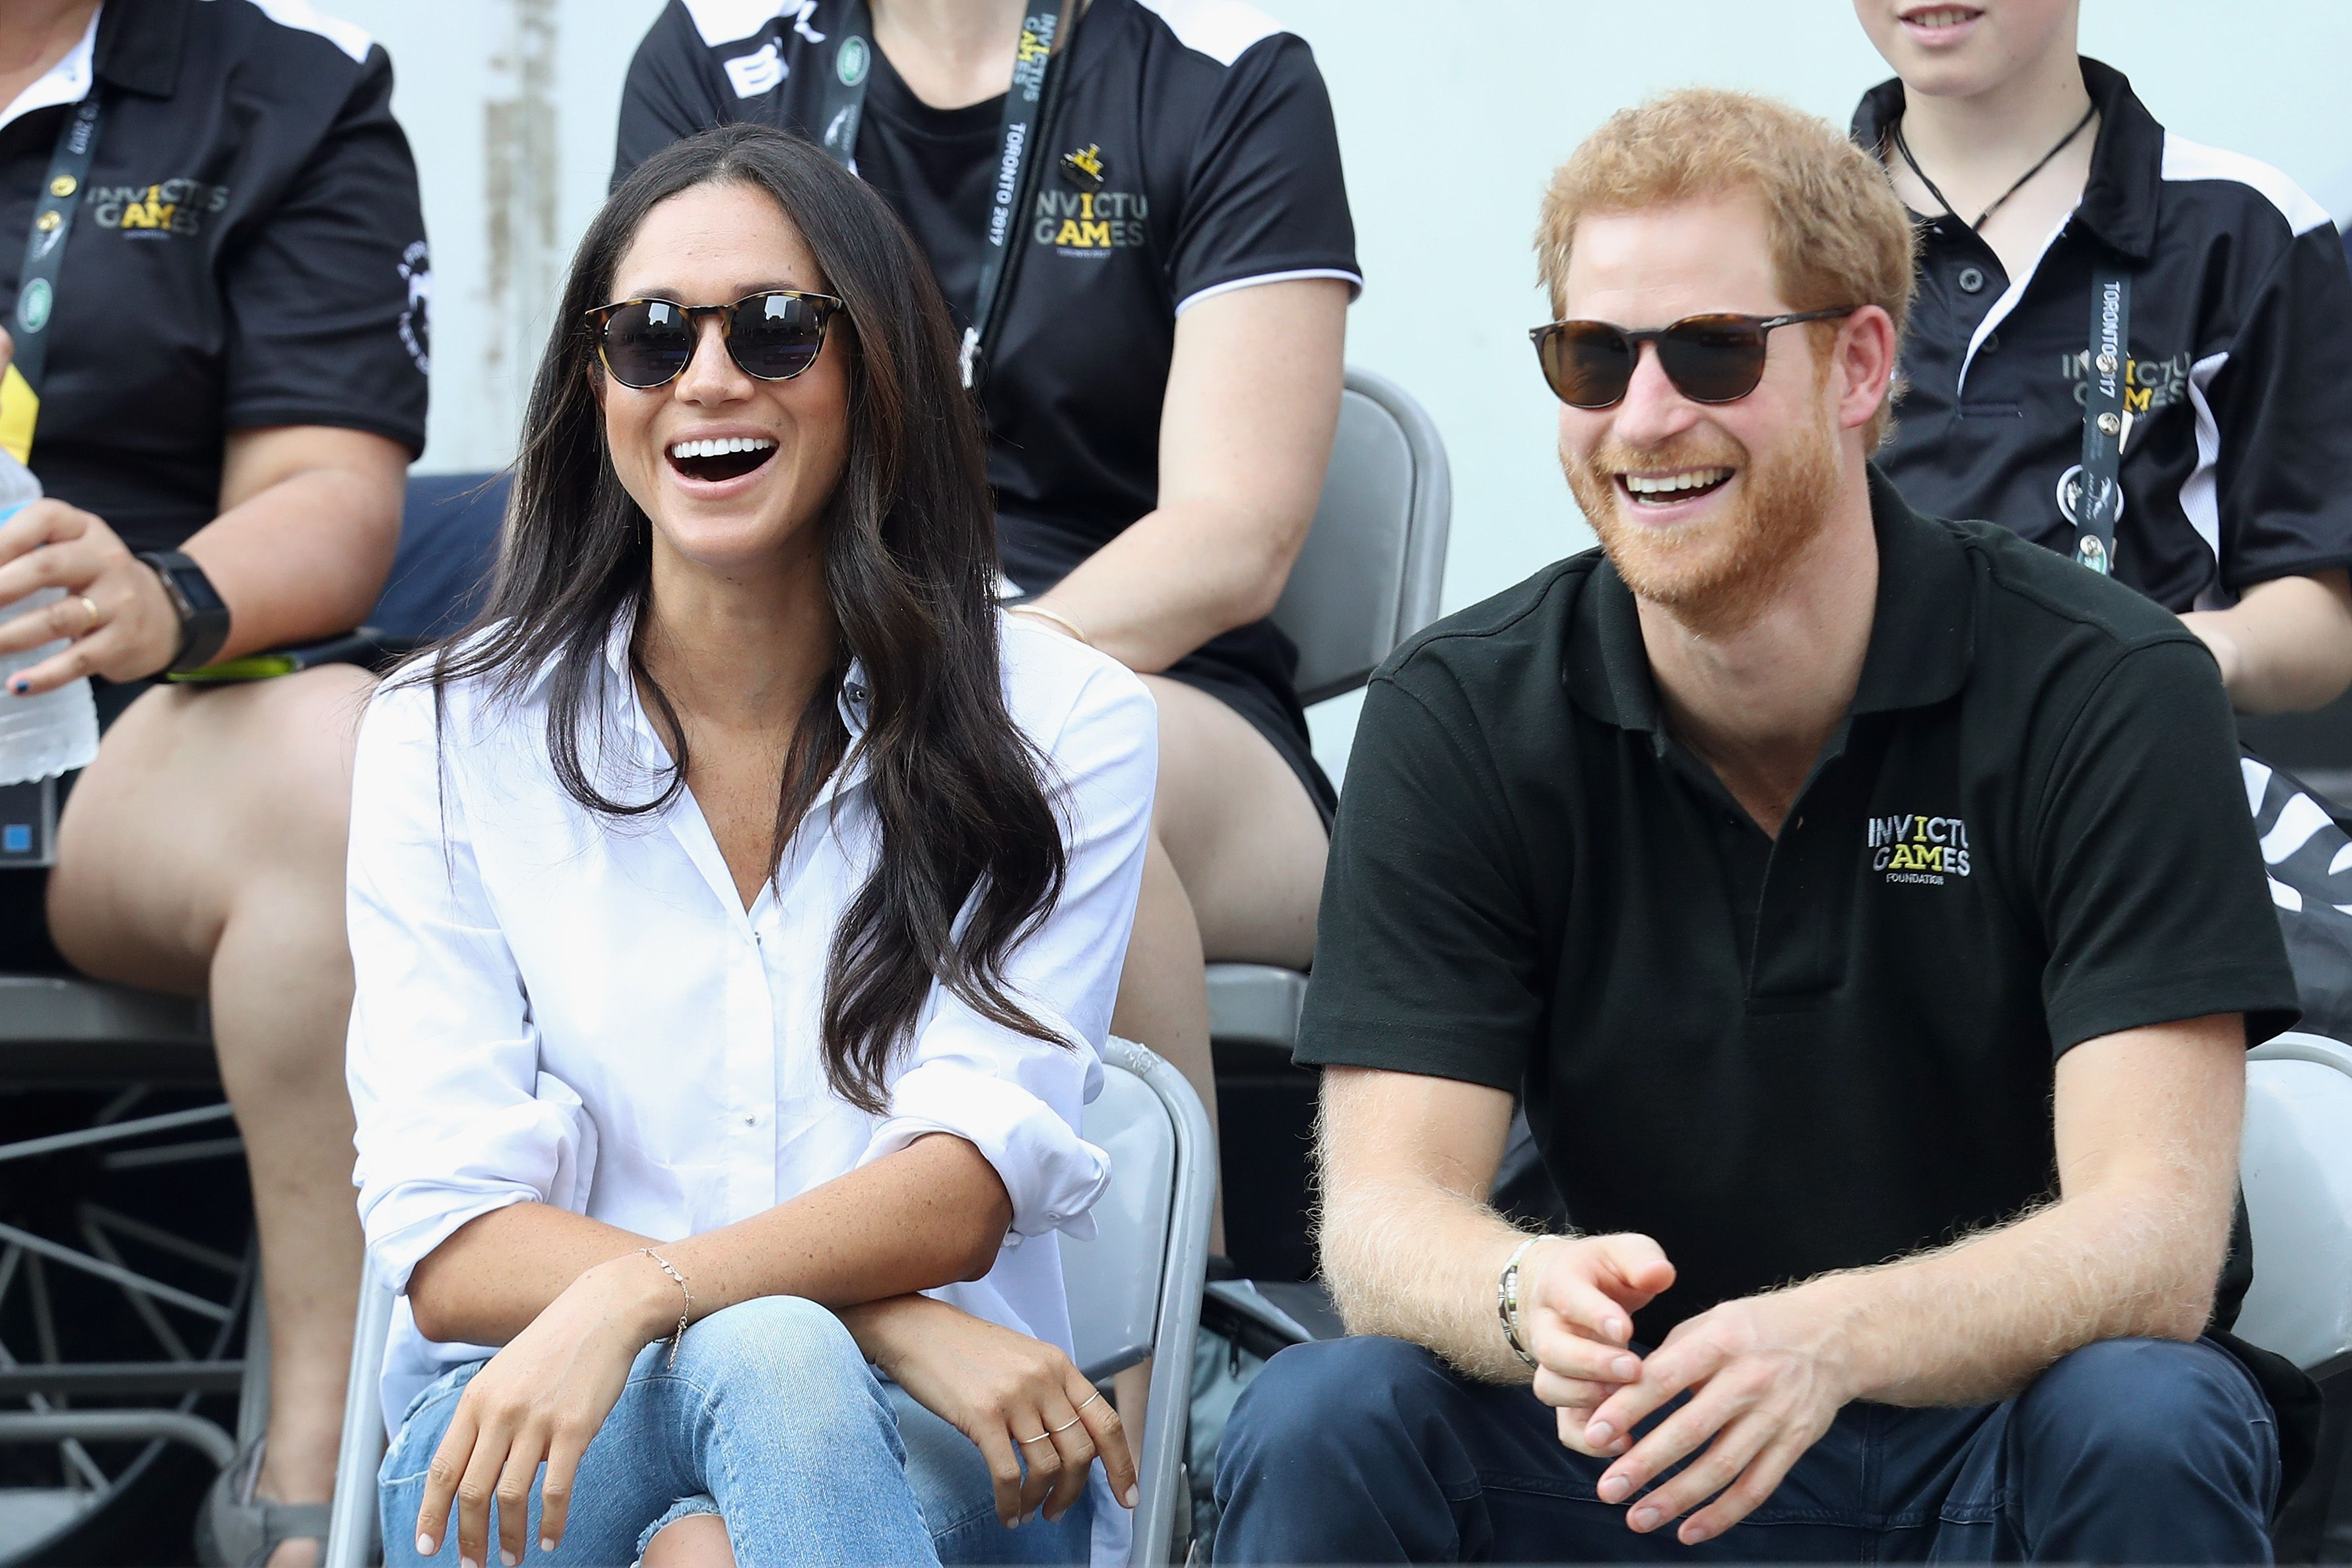 The royal couple Meghan and Harry hang out with most